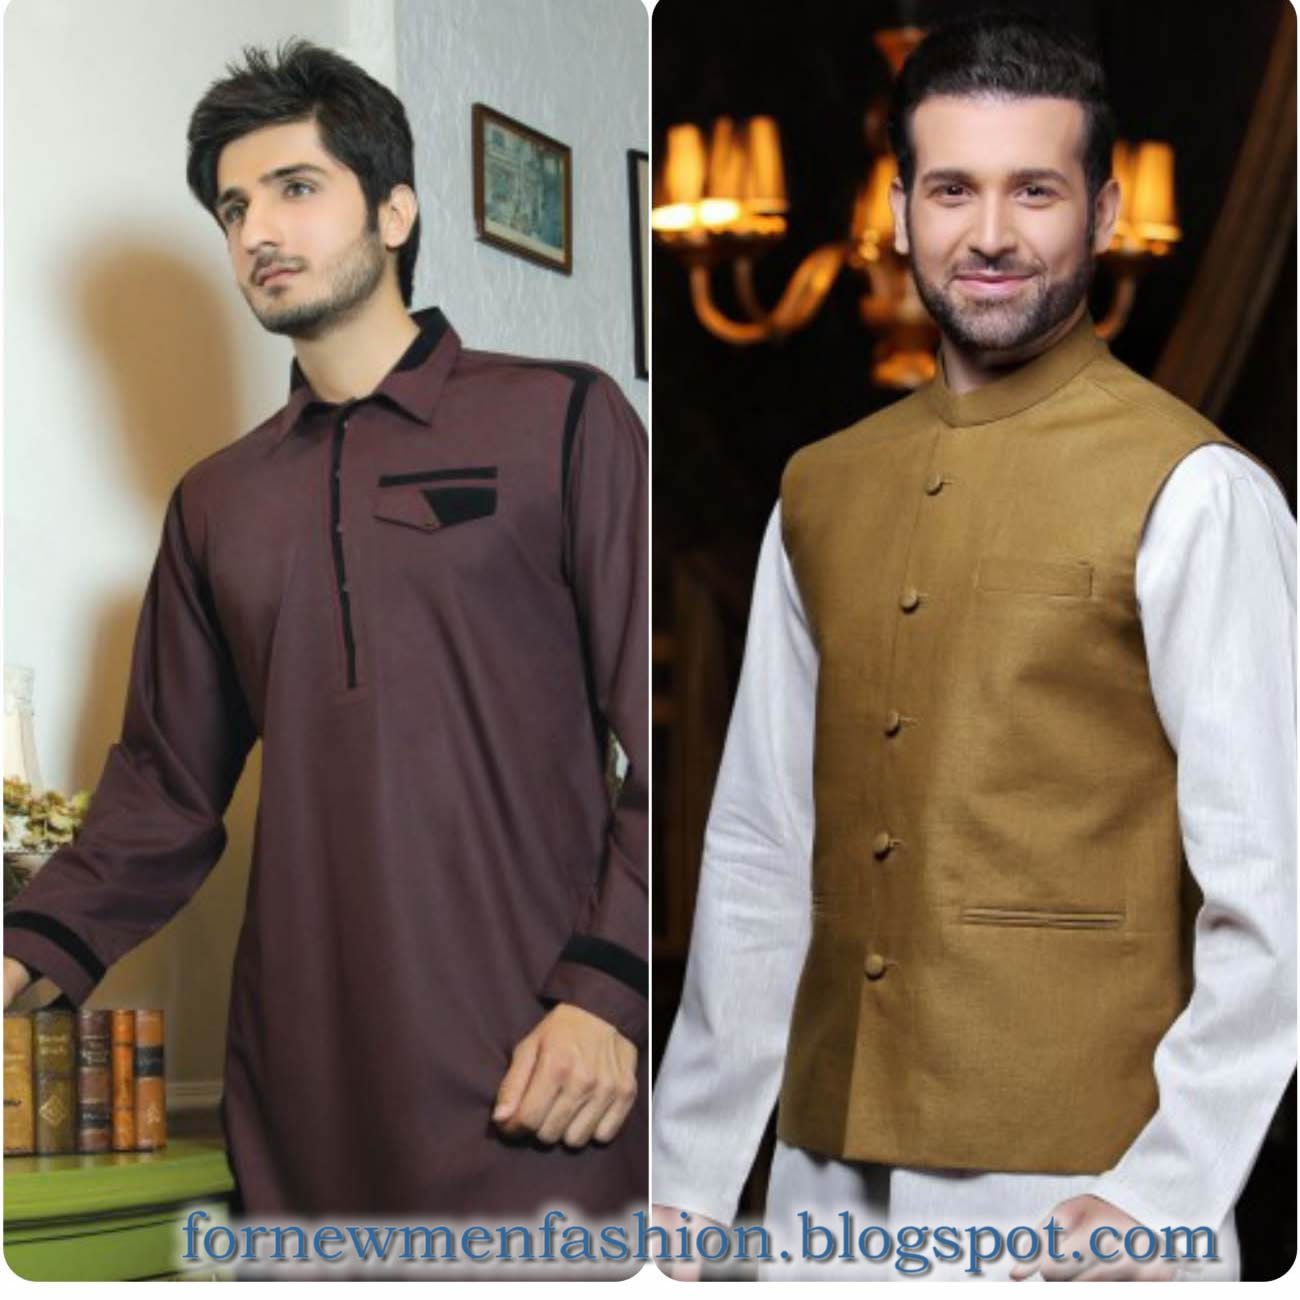 Designs of male and female fashion of shalwar kameez kurta designs - Men And Boys Also Want To Choose Fashionable And Dashing Styles Of Shalwar Kameez Each Fashion Brand Is Not Only For Ladies Rather Some Fashion Brands Are